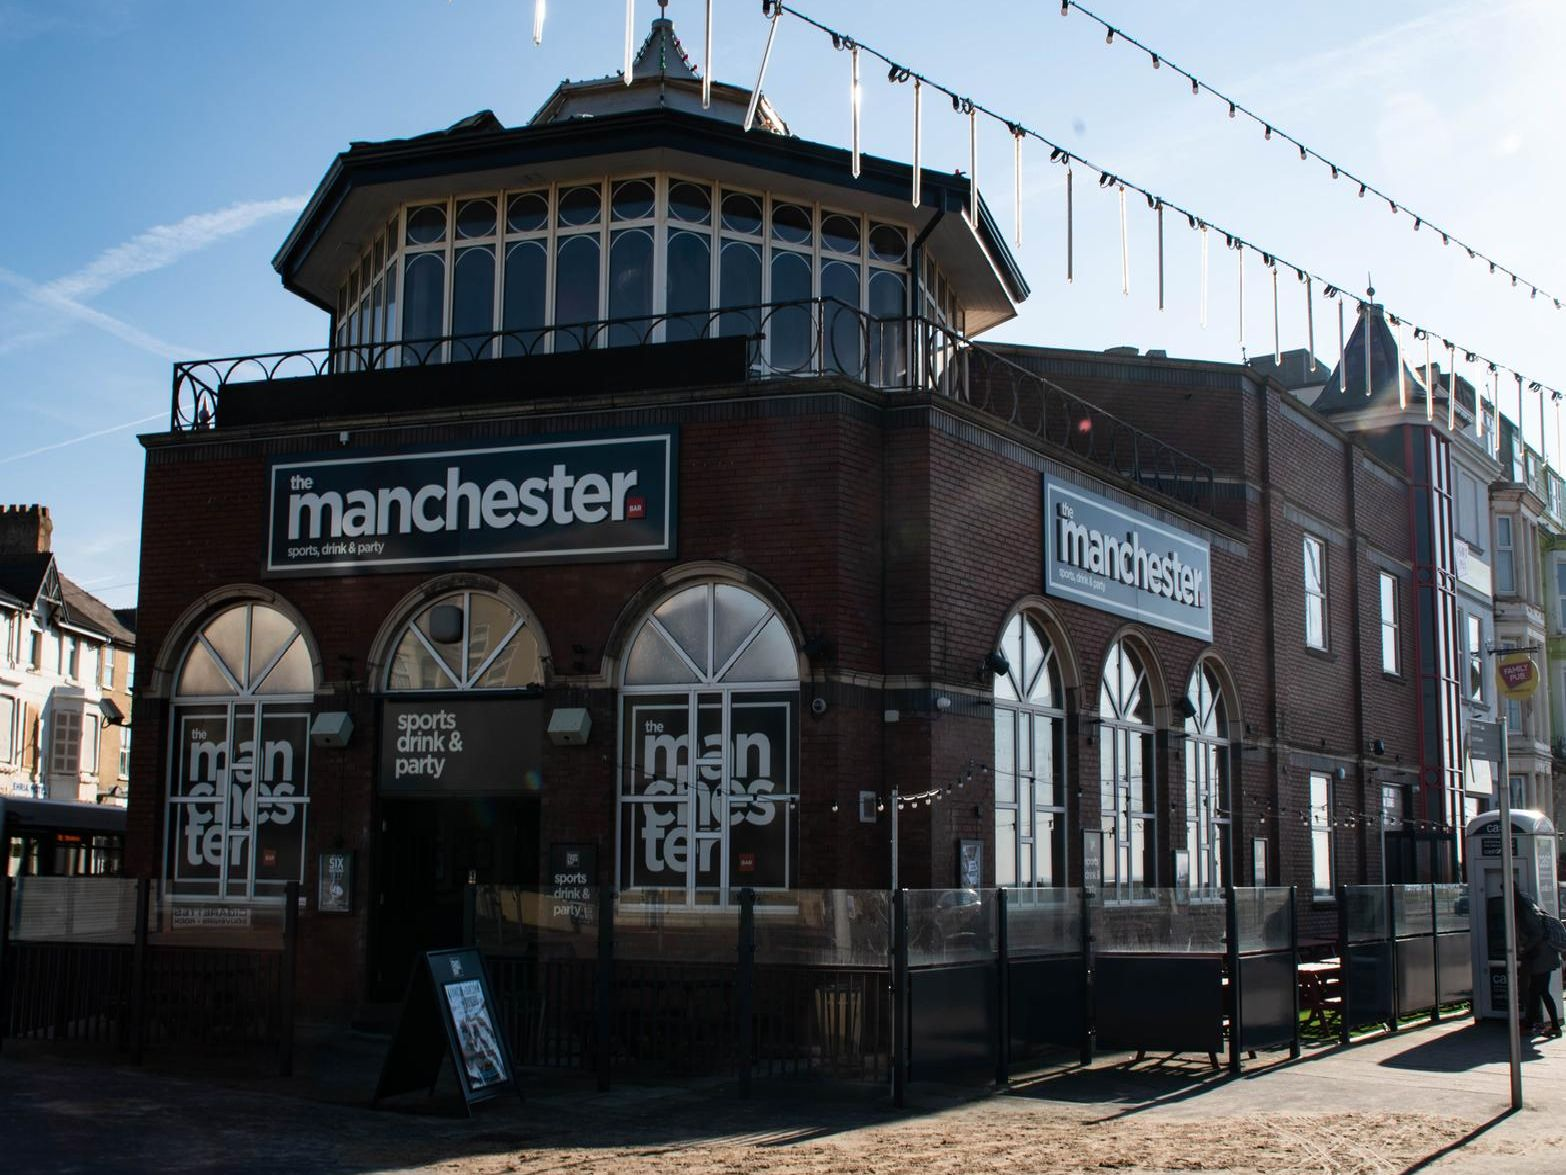 Take a look inside one of Blackpool's best known pubs following its 176,000 refurb